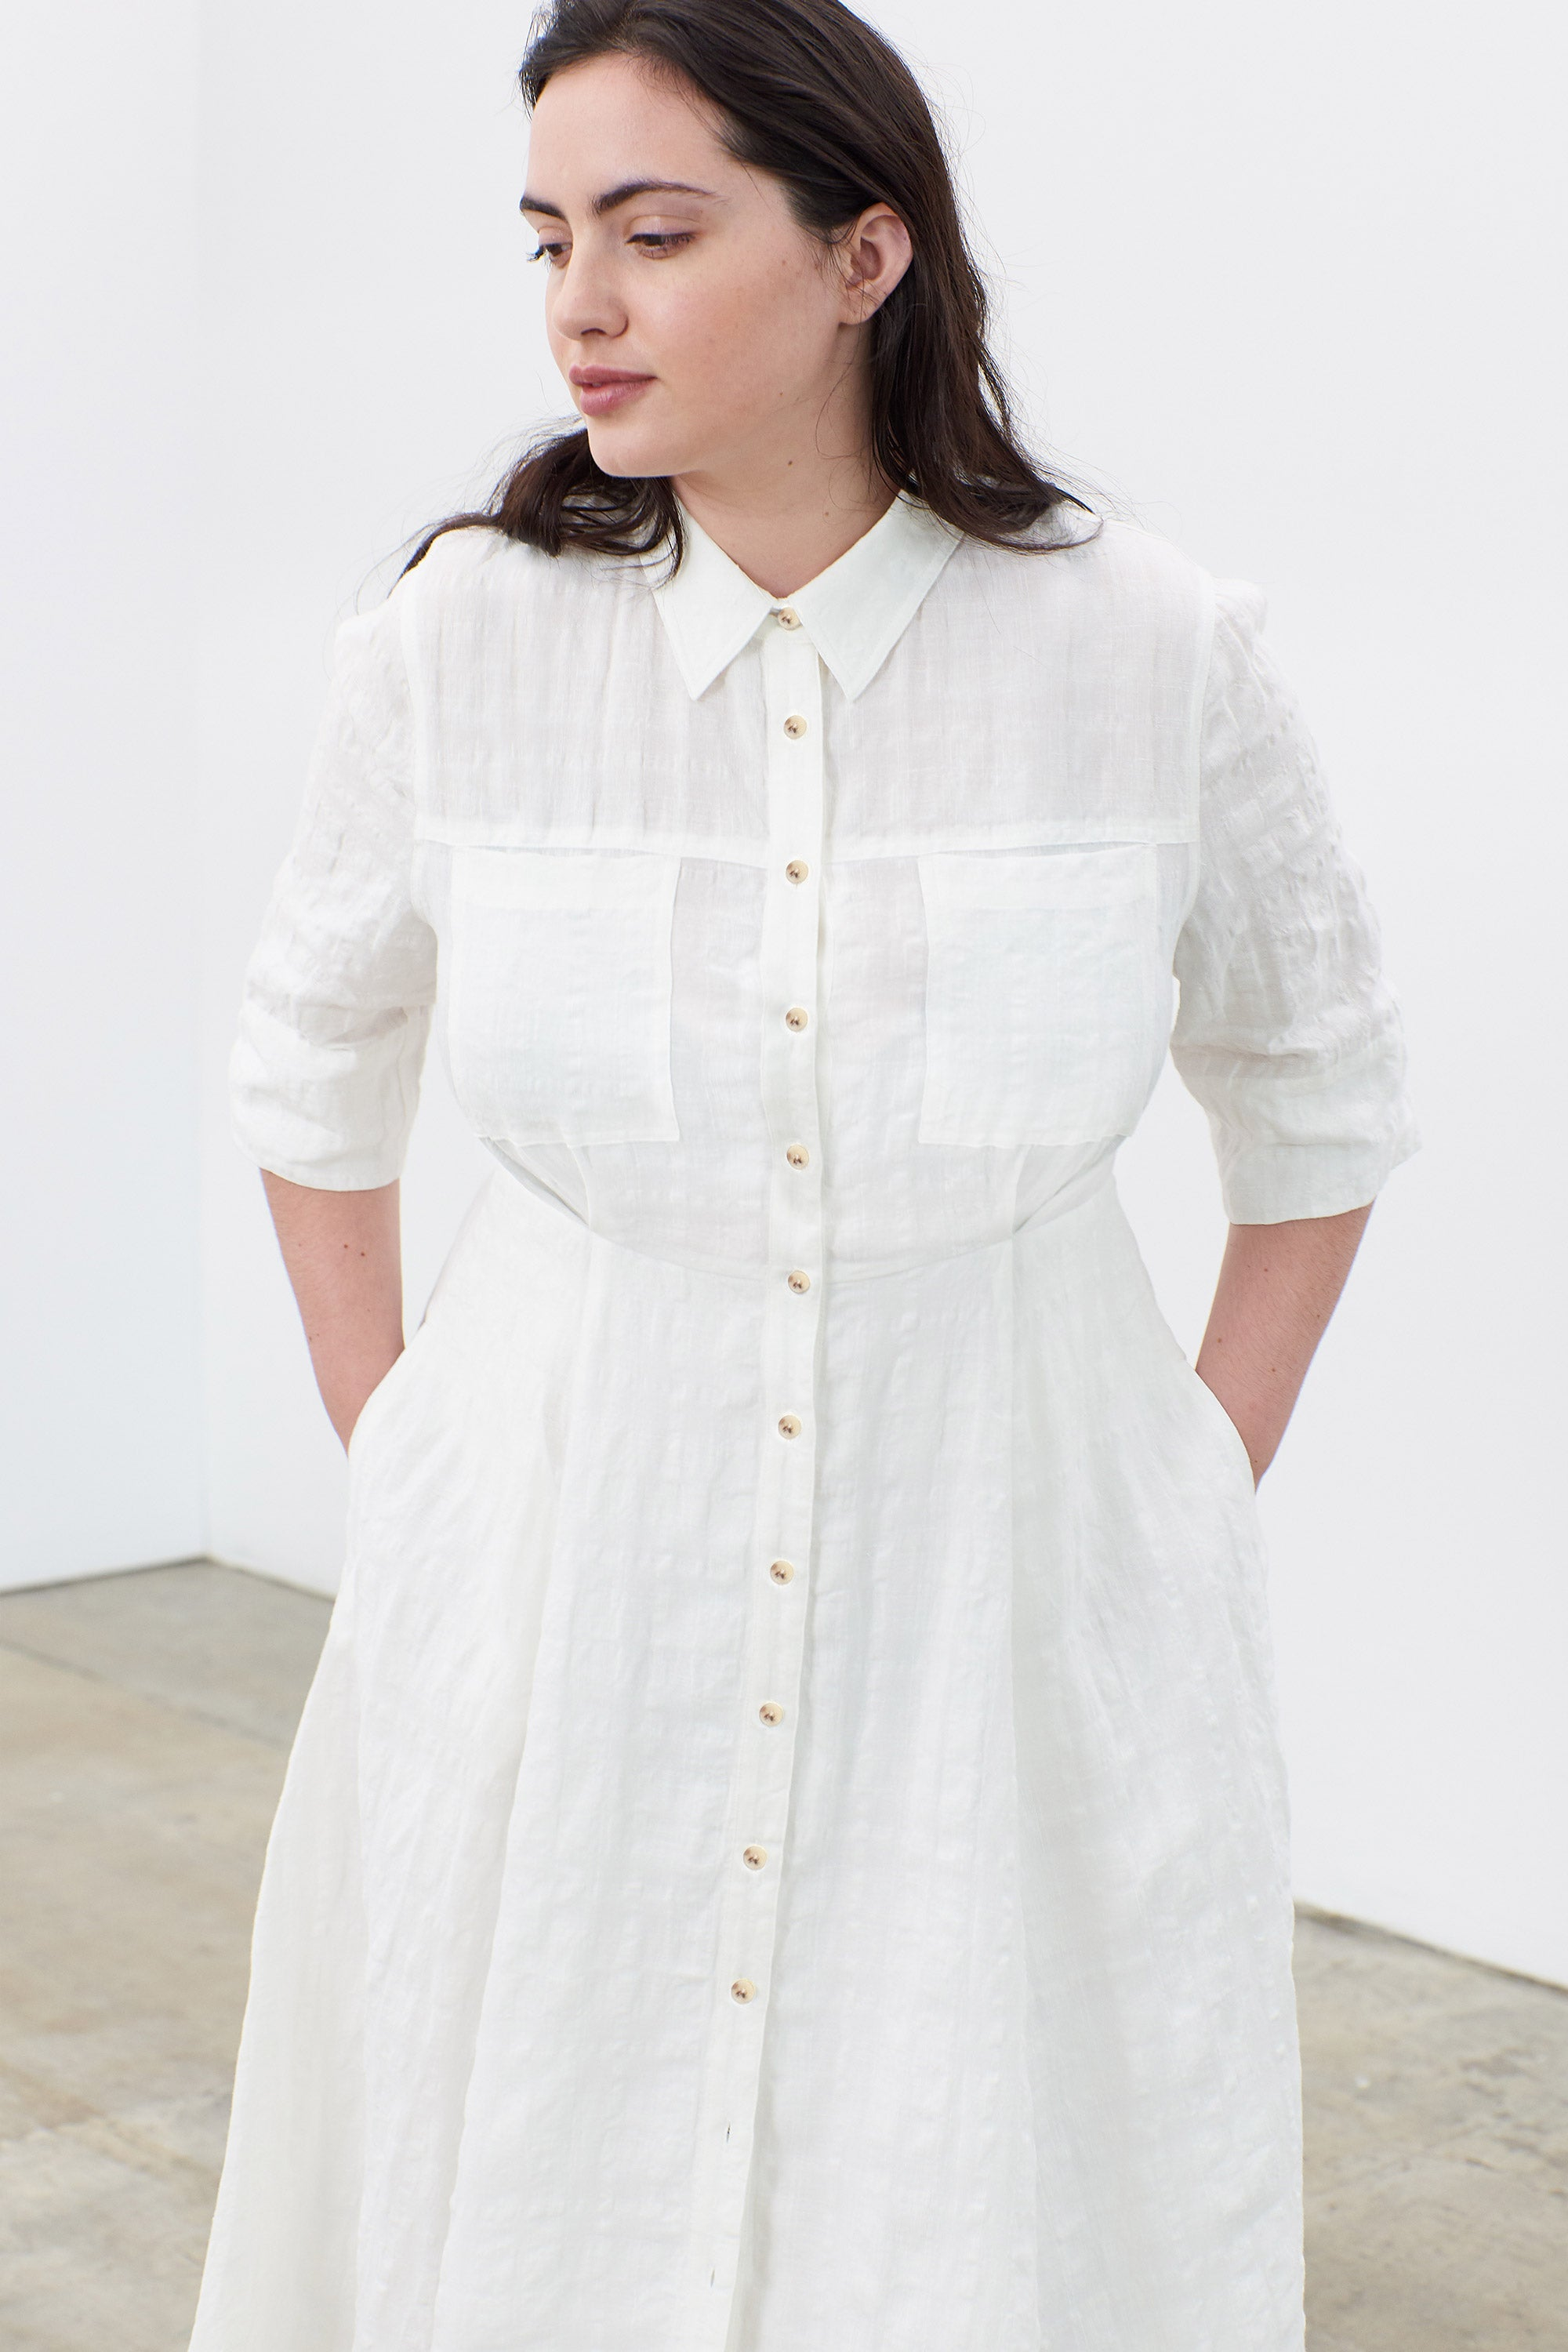 Mara Hoffman Extended White Lorelei Dress in linen and cotton (button detail)